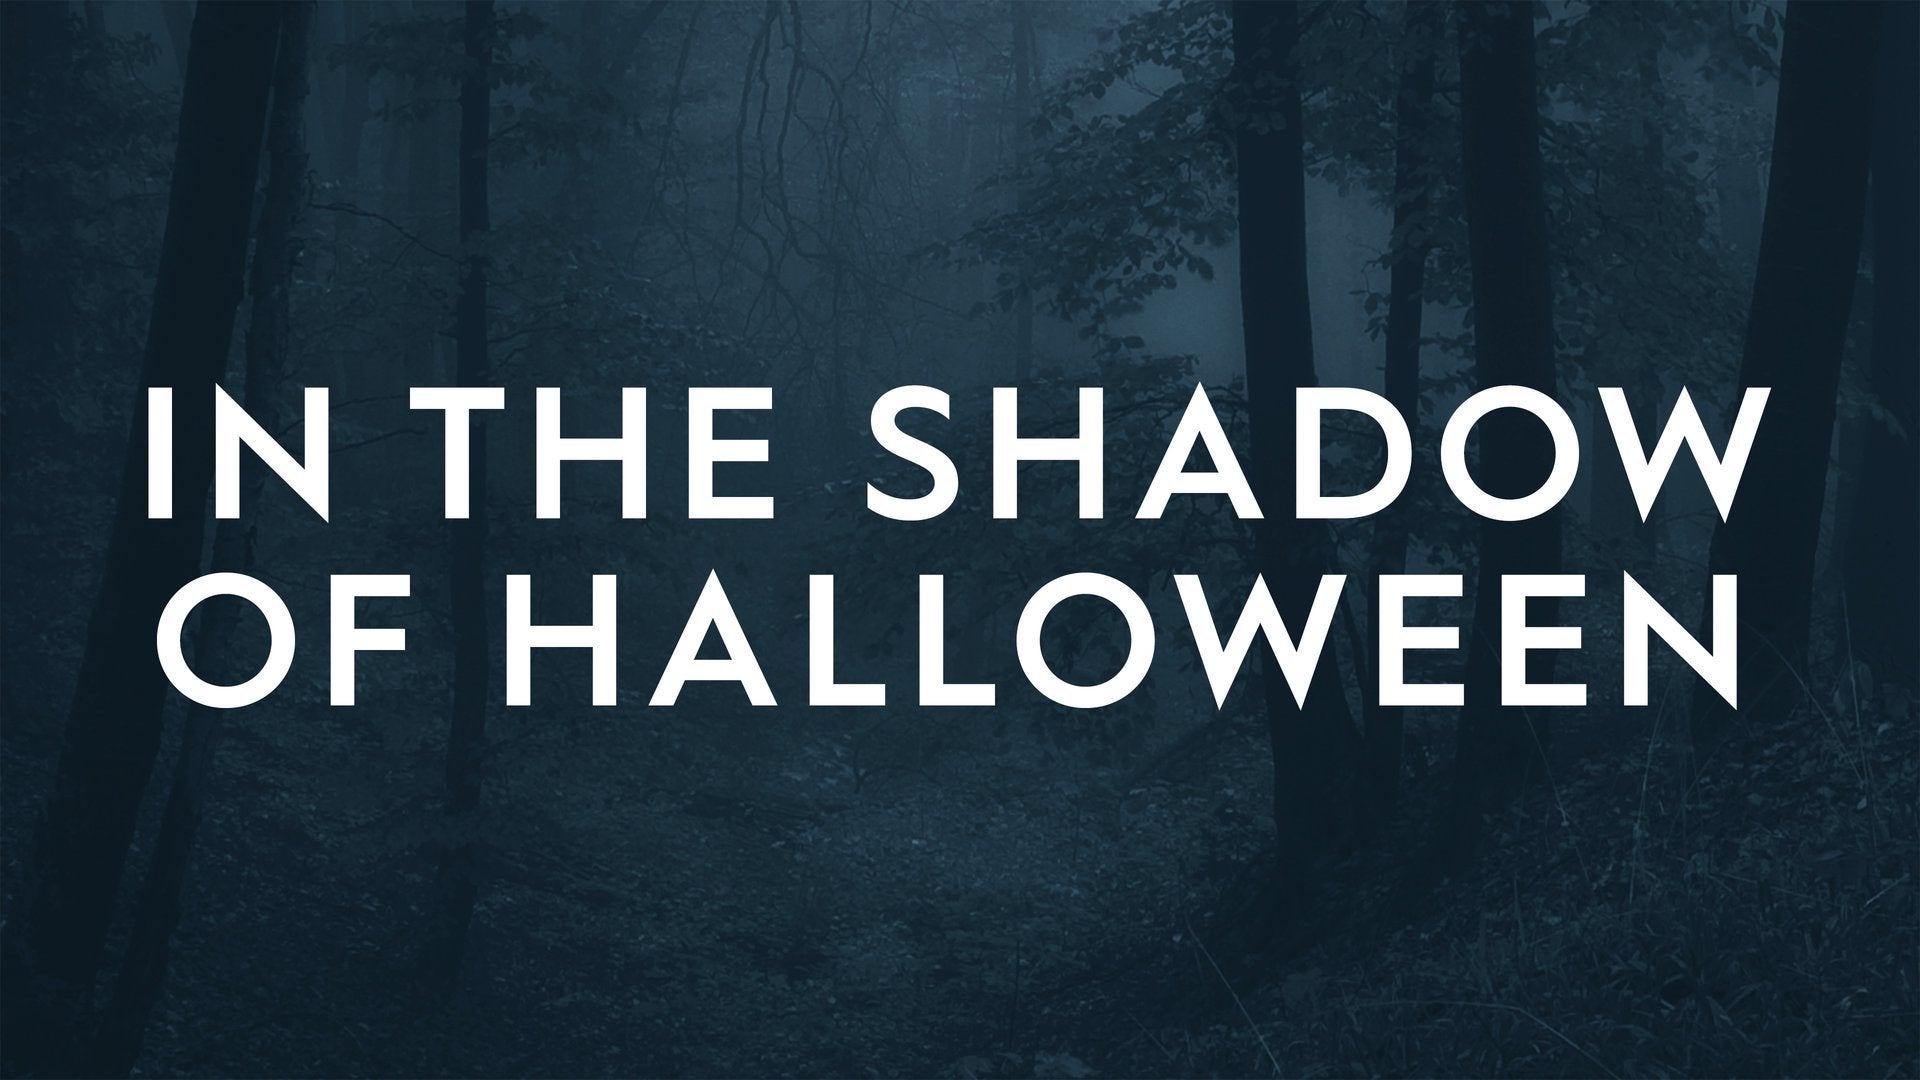 In the Shadow of Halloween